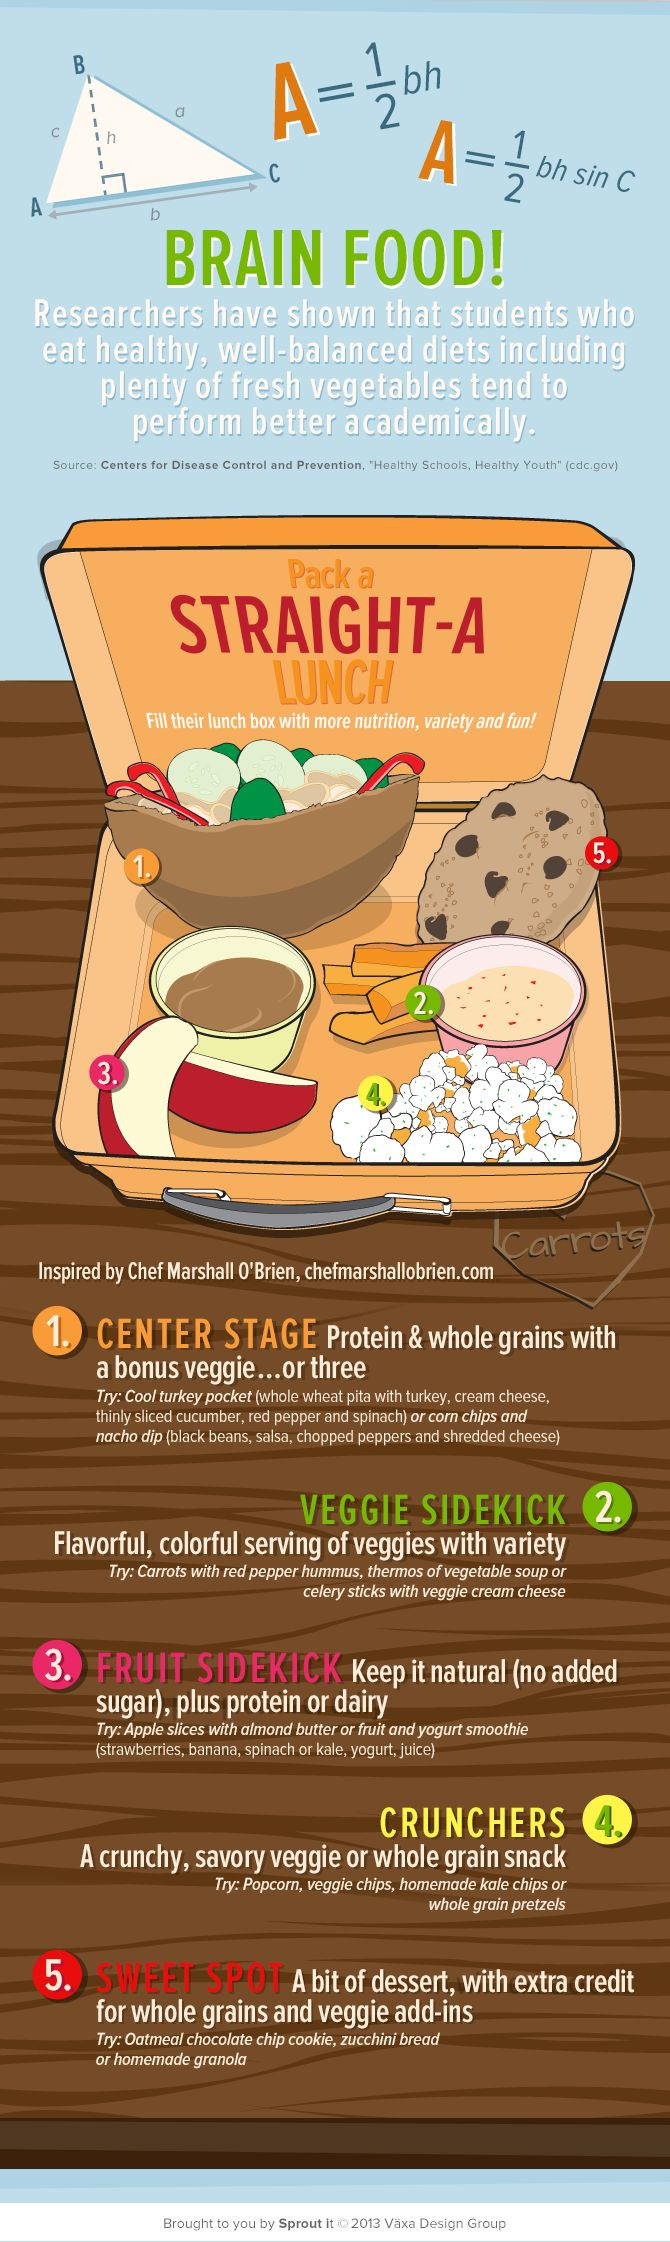 Brain Food - Pakc a Straight-A Lunch | Quick tips on how to pack a healthy school lunch